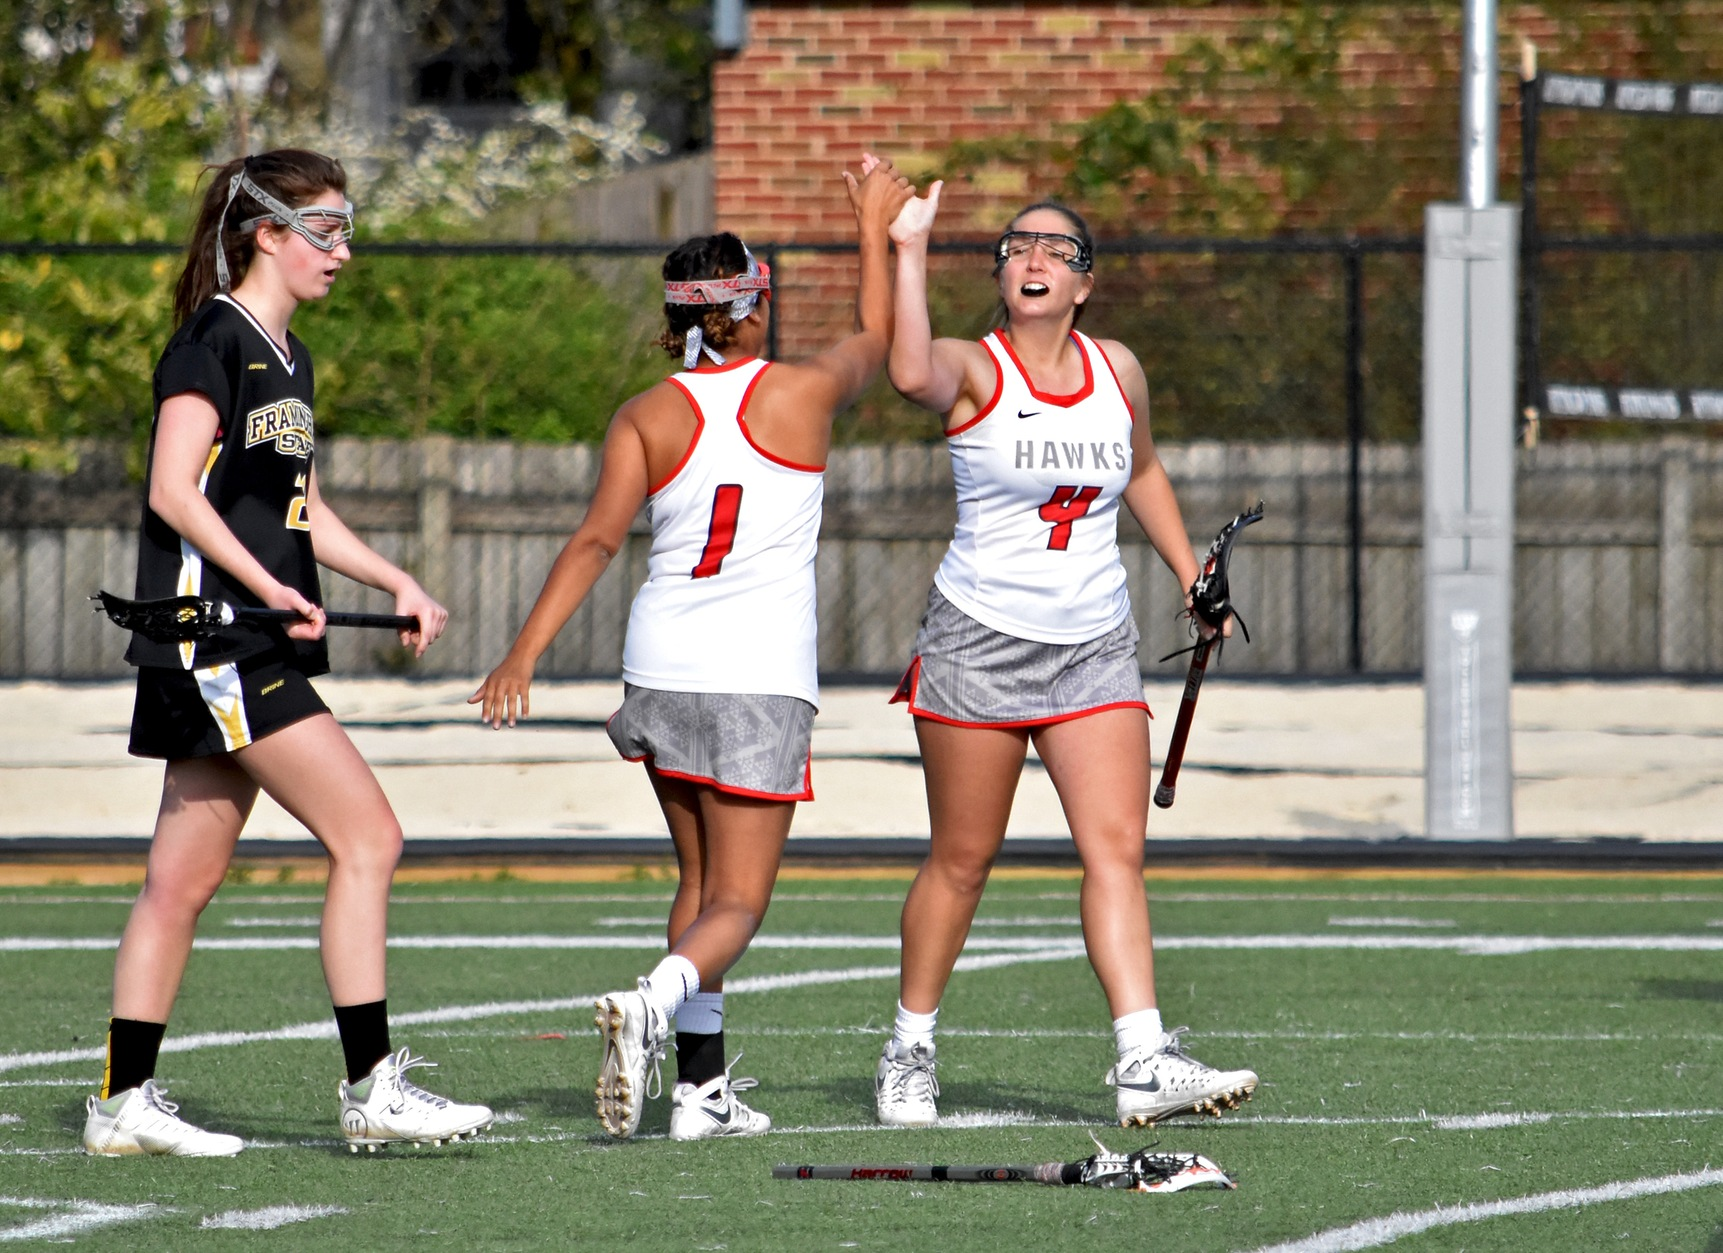 Huntingdon's Jade Paul (#1) is congratulated by Carolyn Smith (#4) after Paul's second goal in Thursday's loss to Framingham State. (Photo by Wesley Lyle)